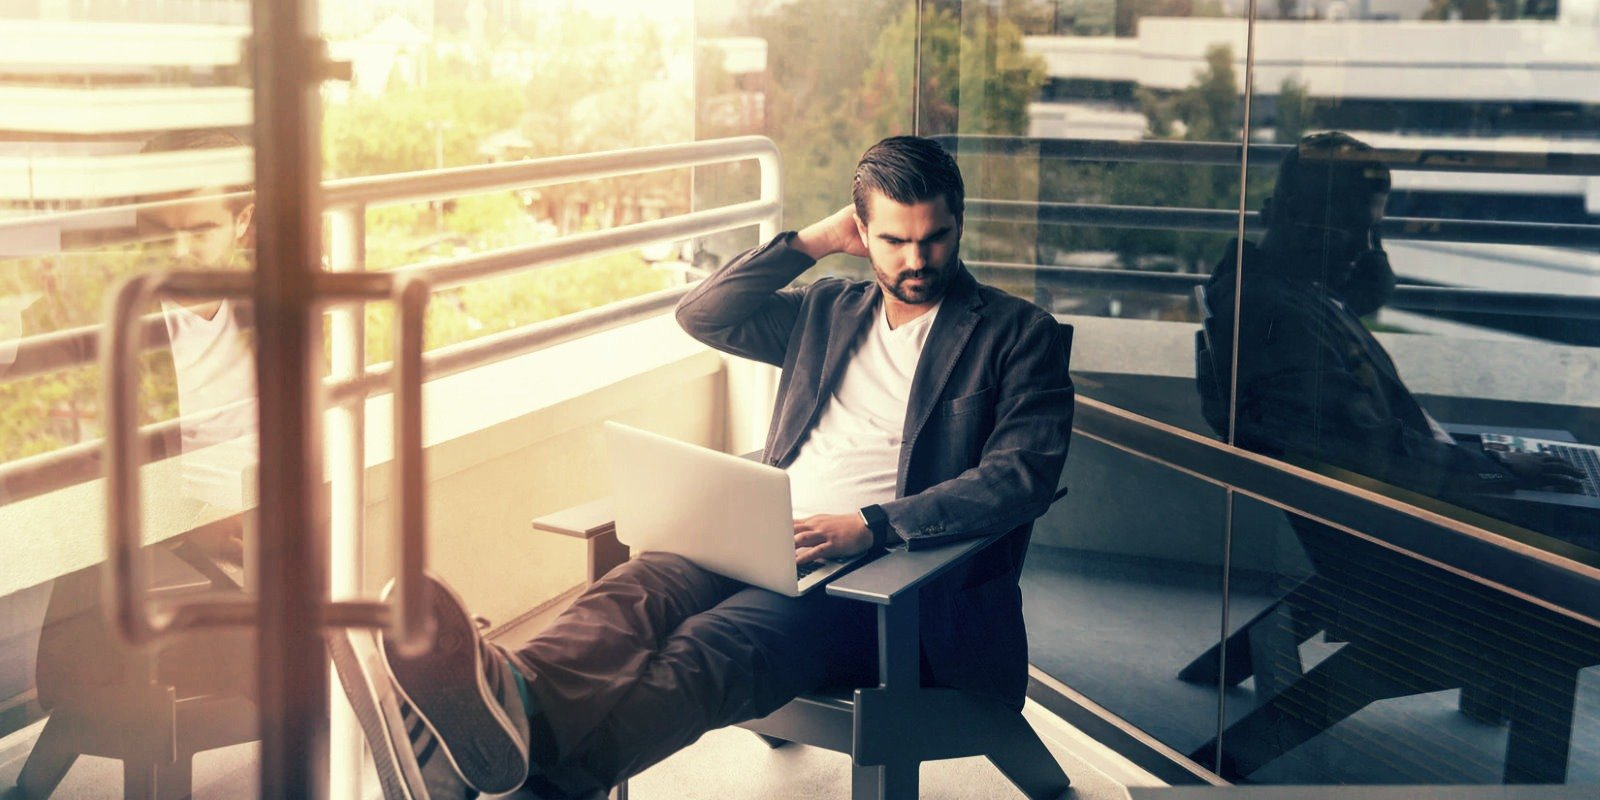 Man sitting outside and looking concerned about something on his laptop